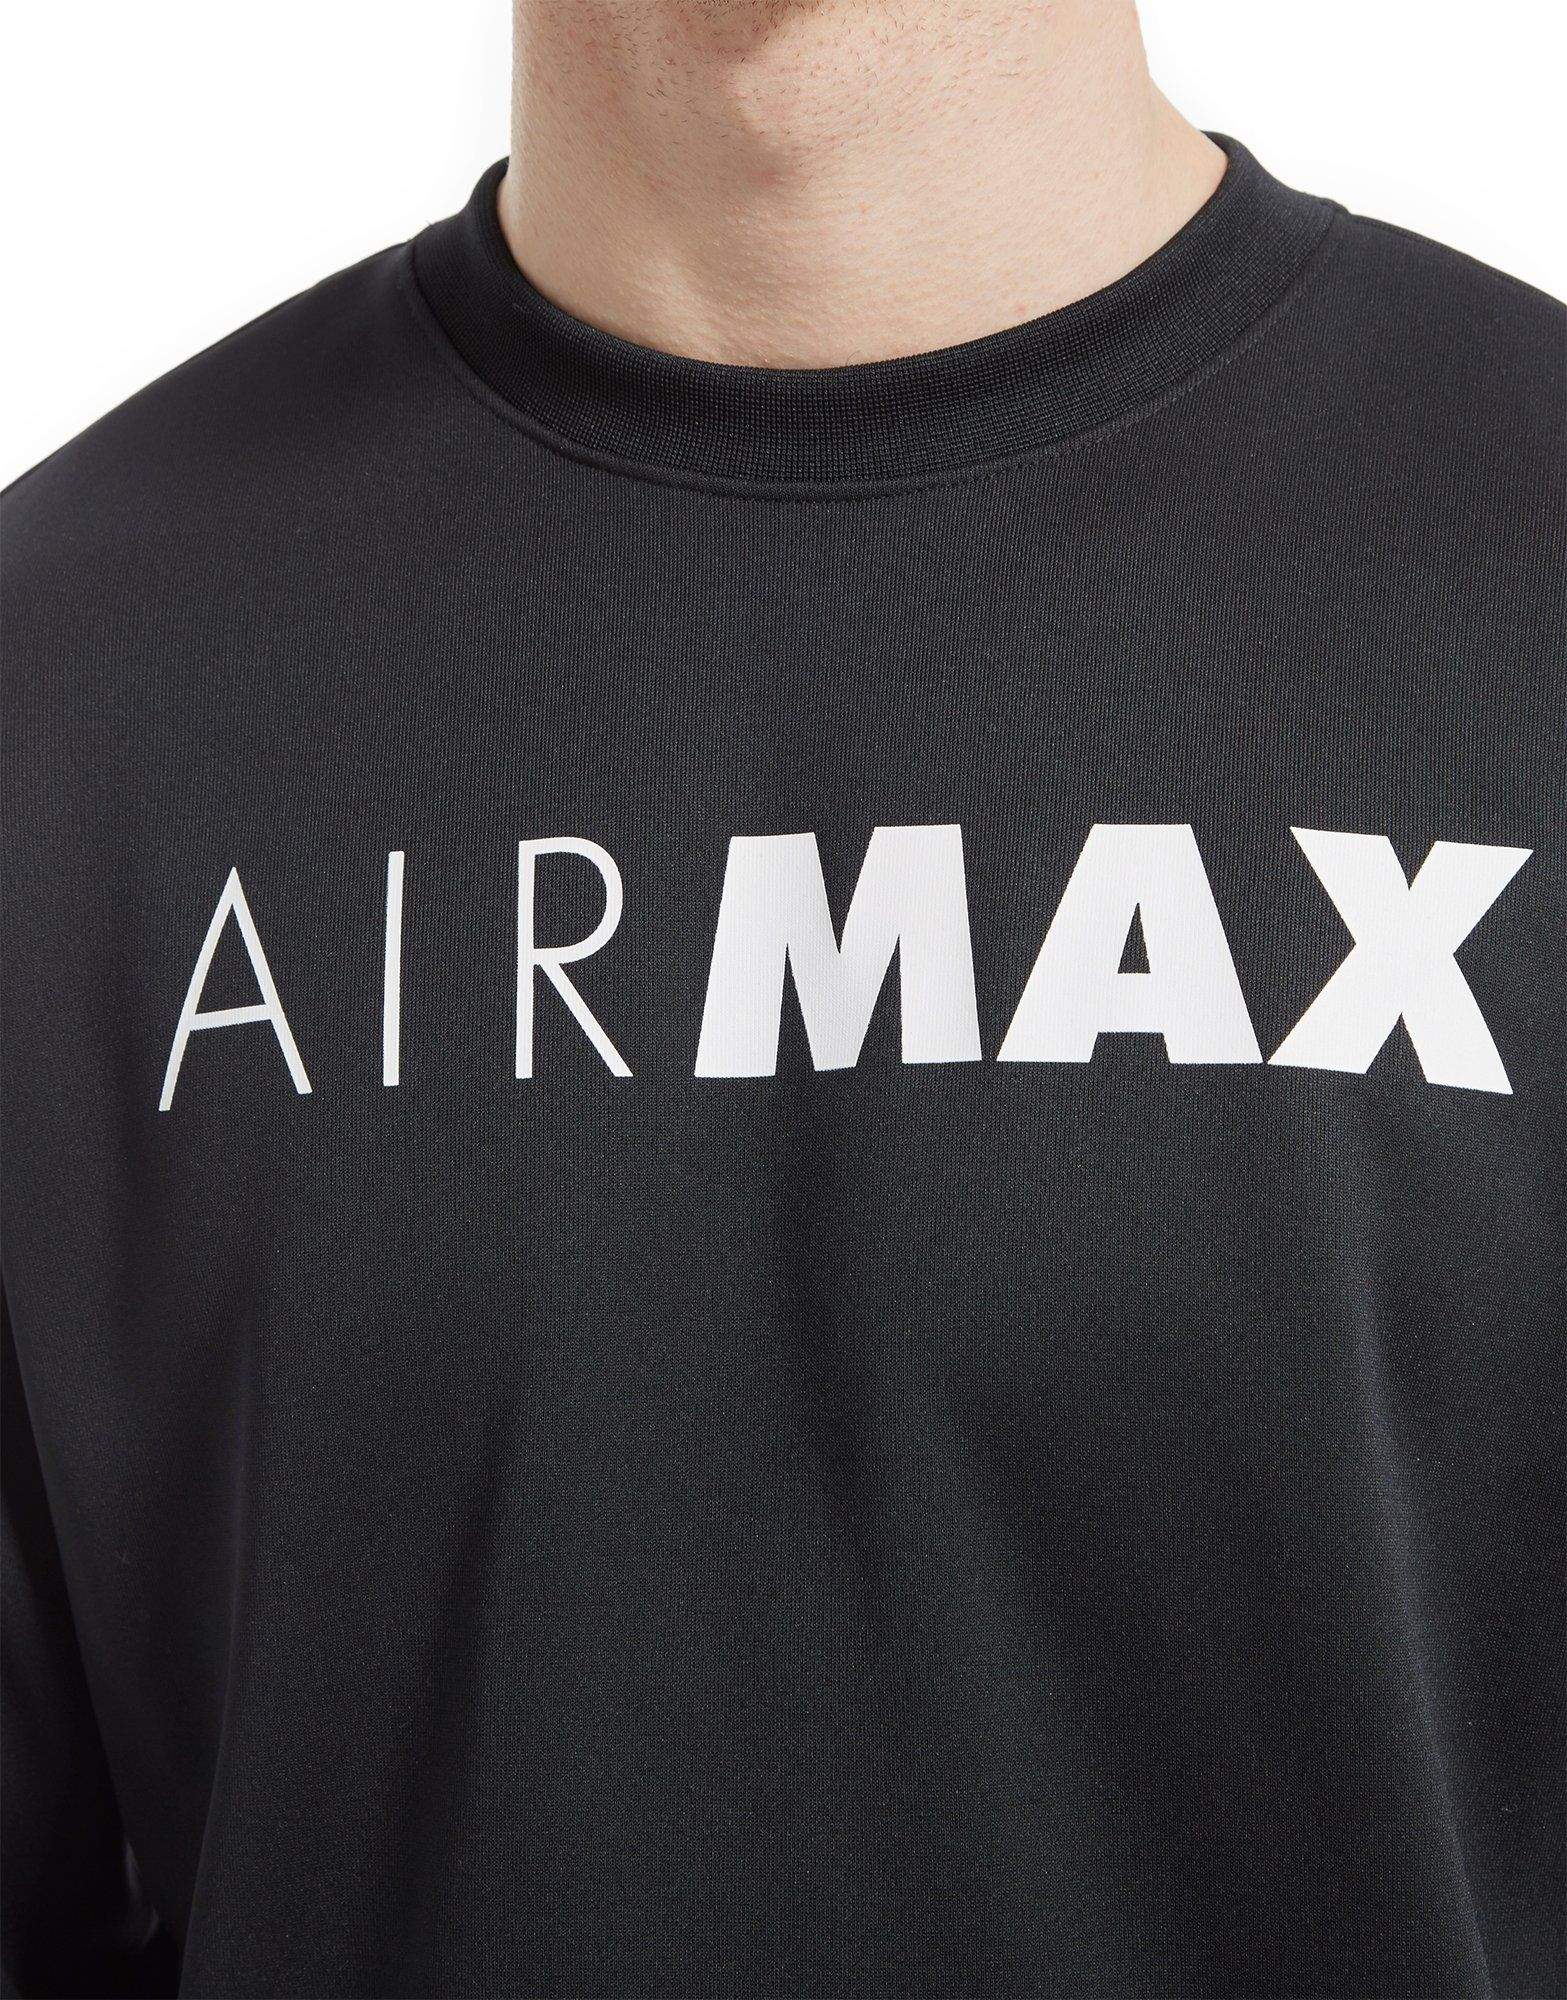 zhqmz Nike Air Max Crew Sweatshirt | JD Sports